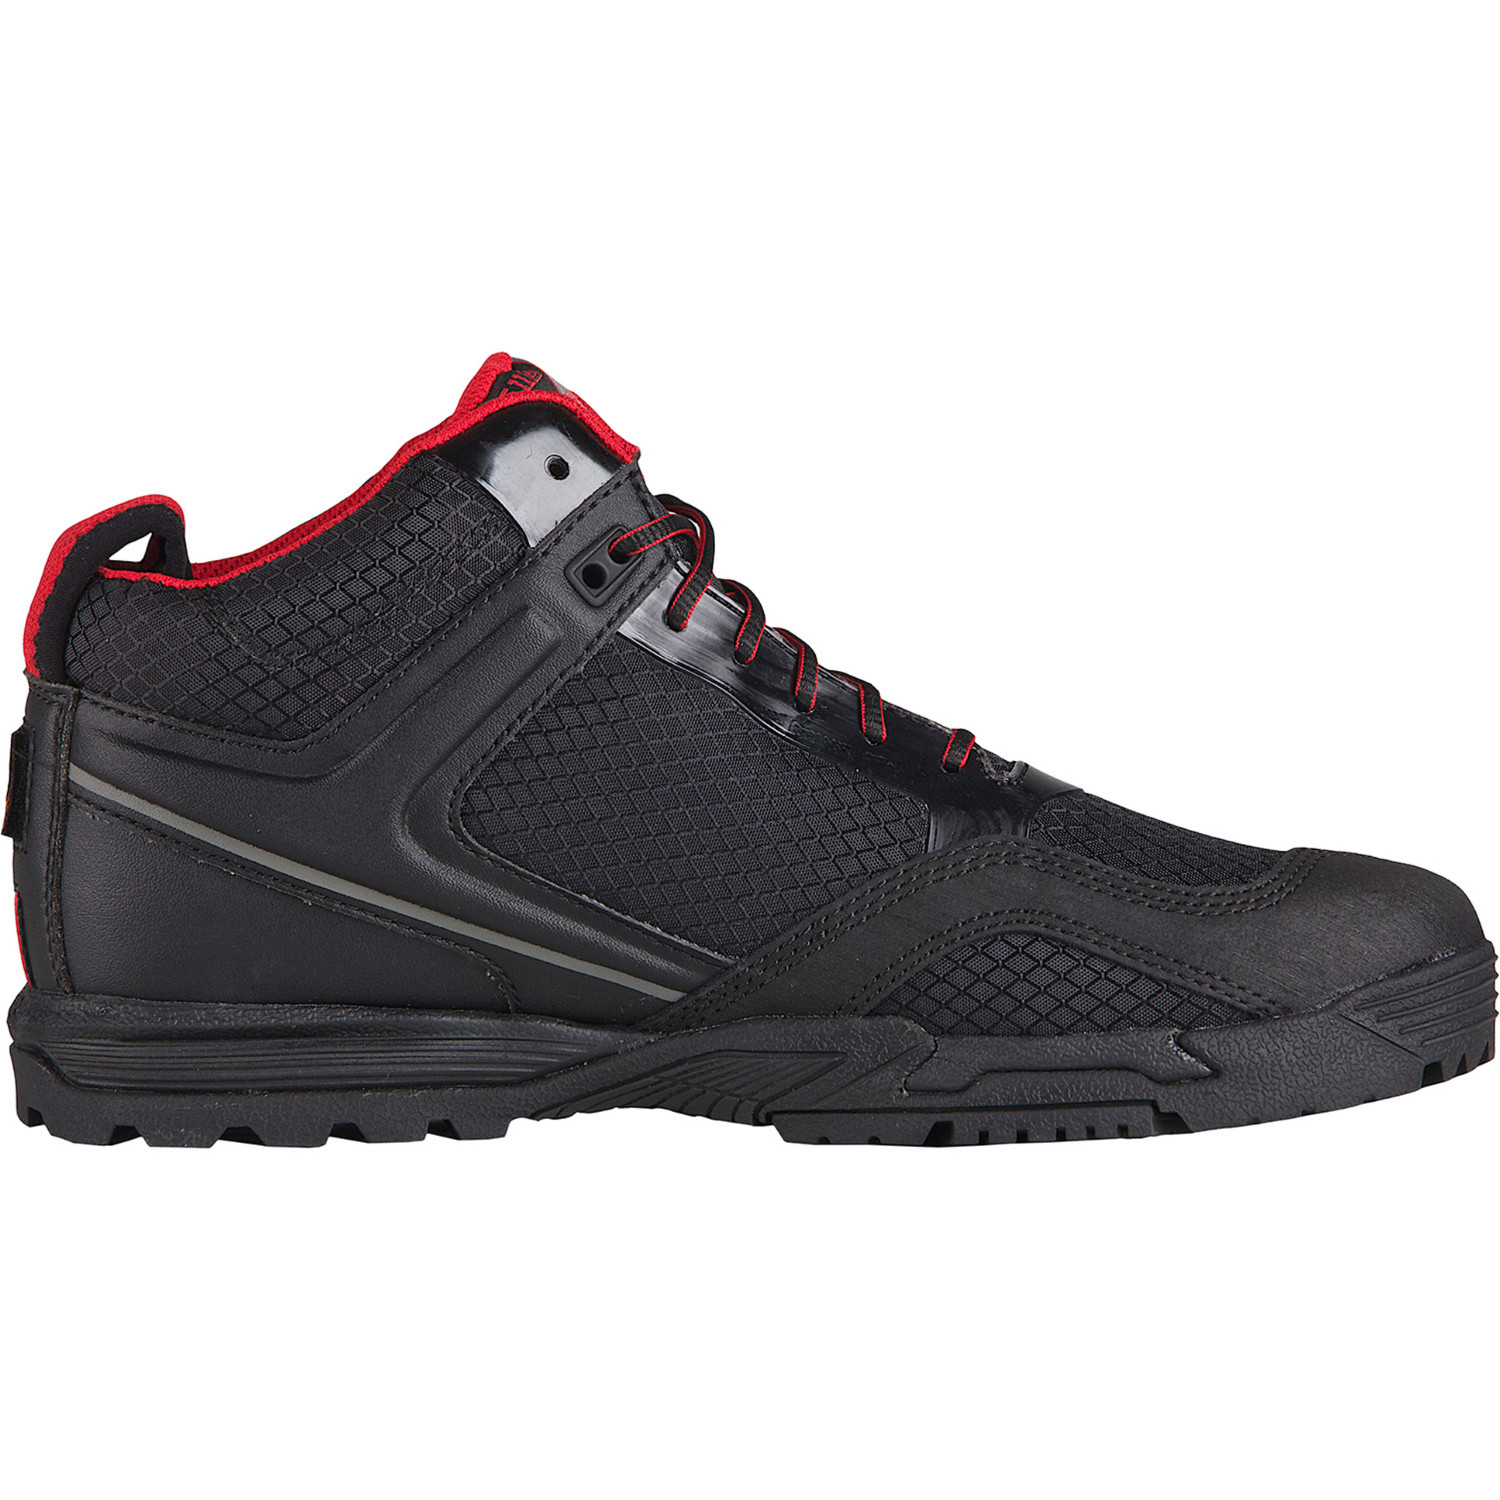 5.11 Tactical Range Master Boots from